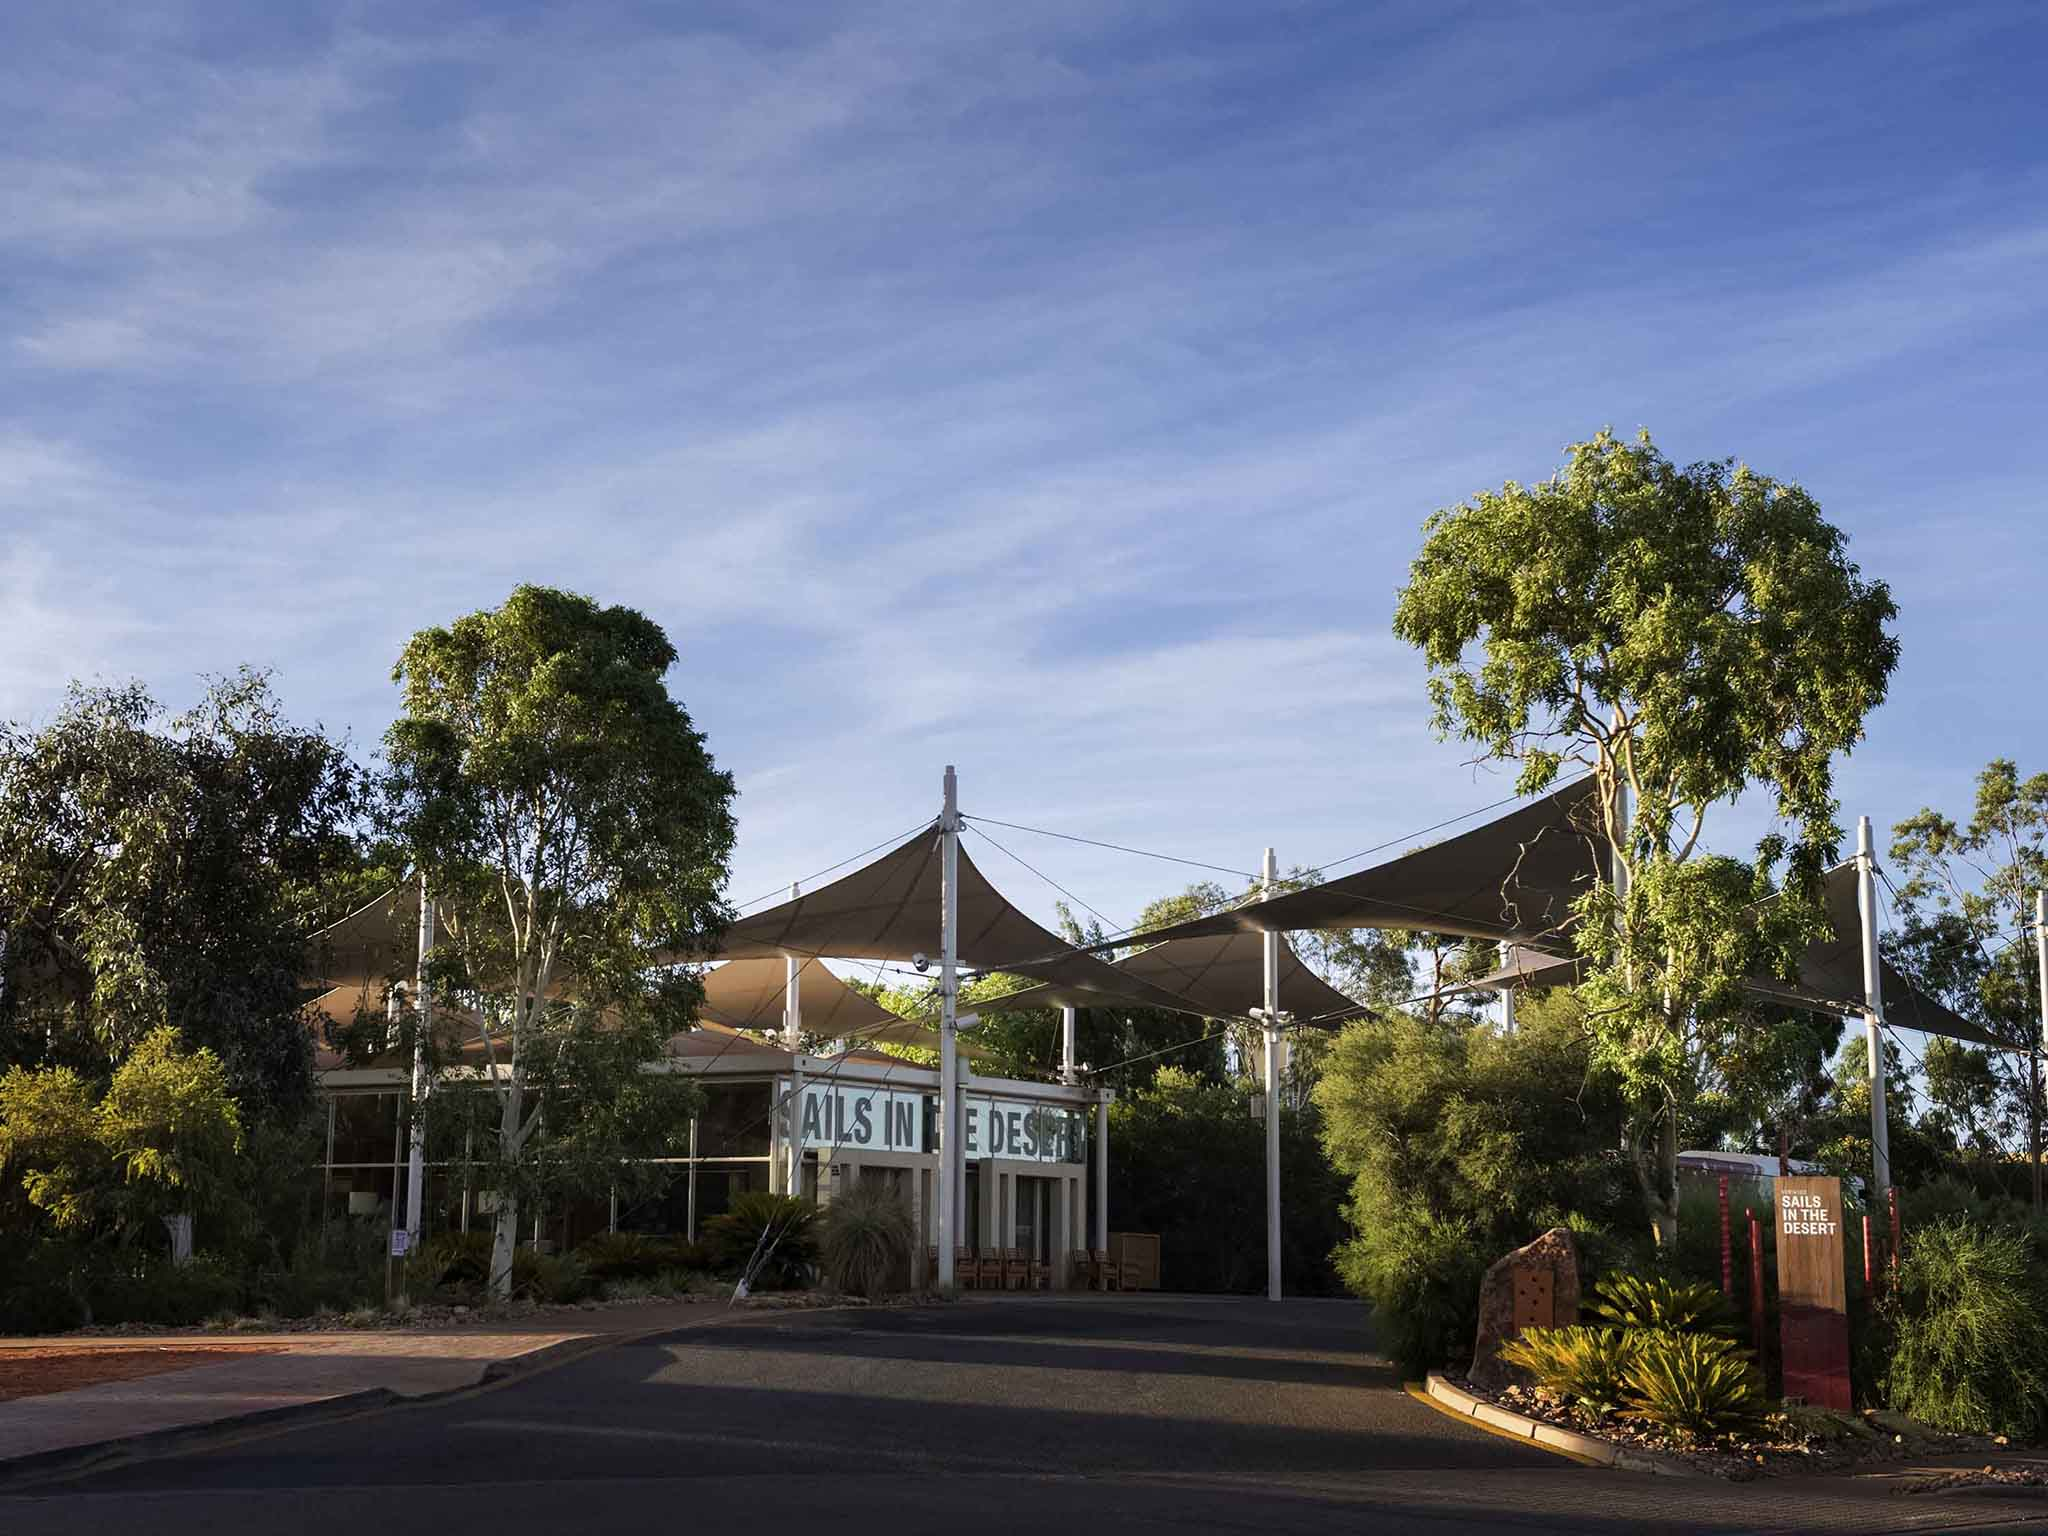 Hotel - Sails in the Desert - A member of Pullman Hotels